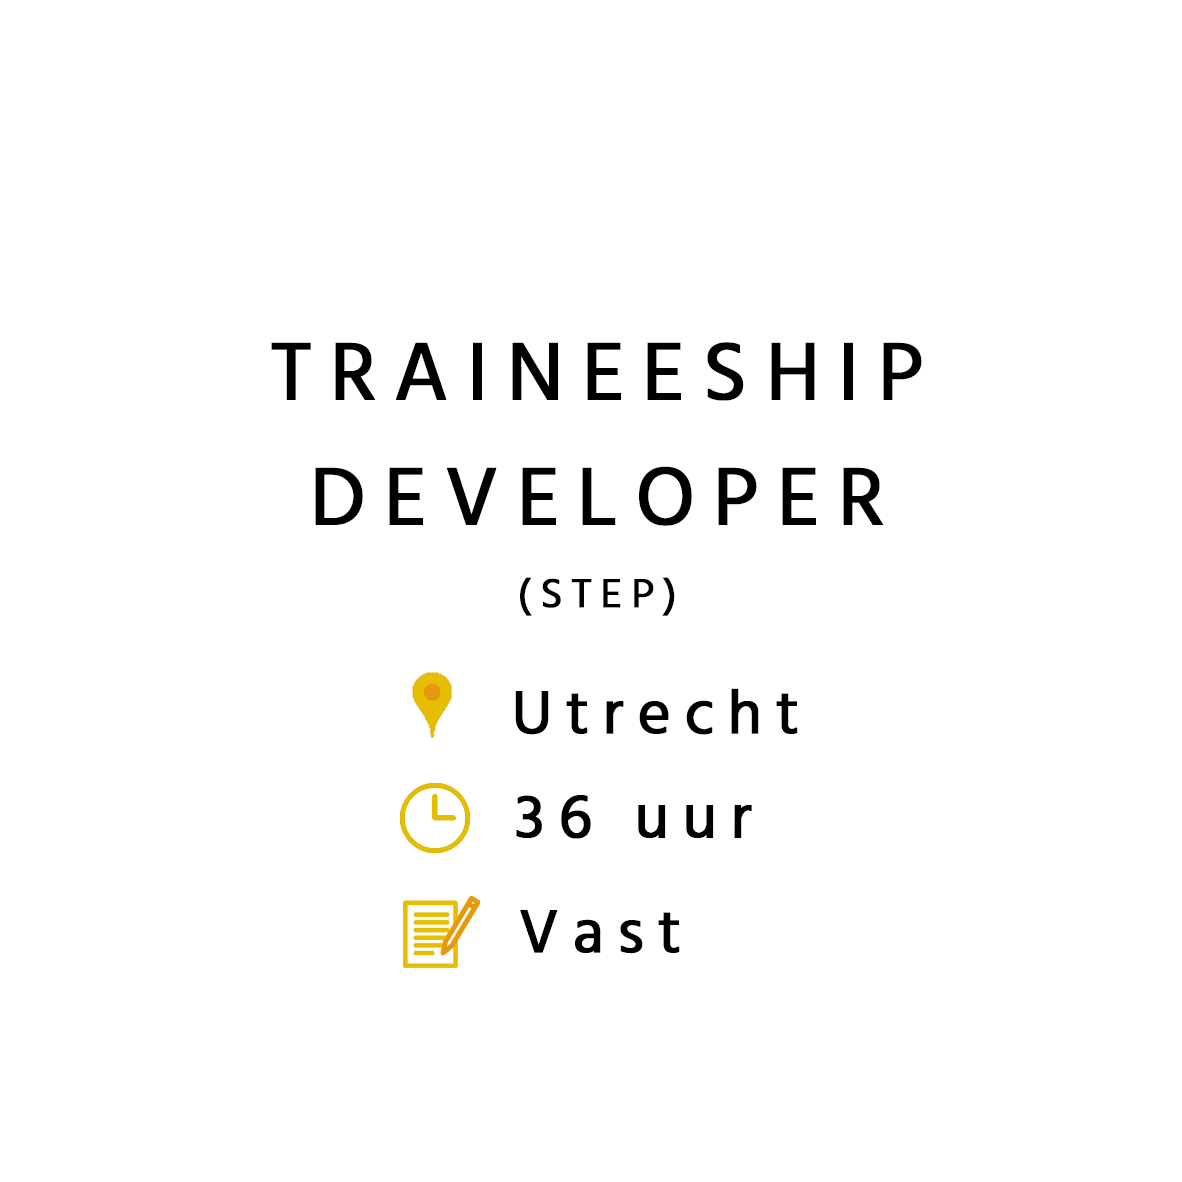 Traineeship Developer